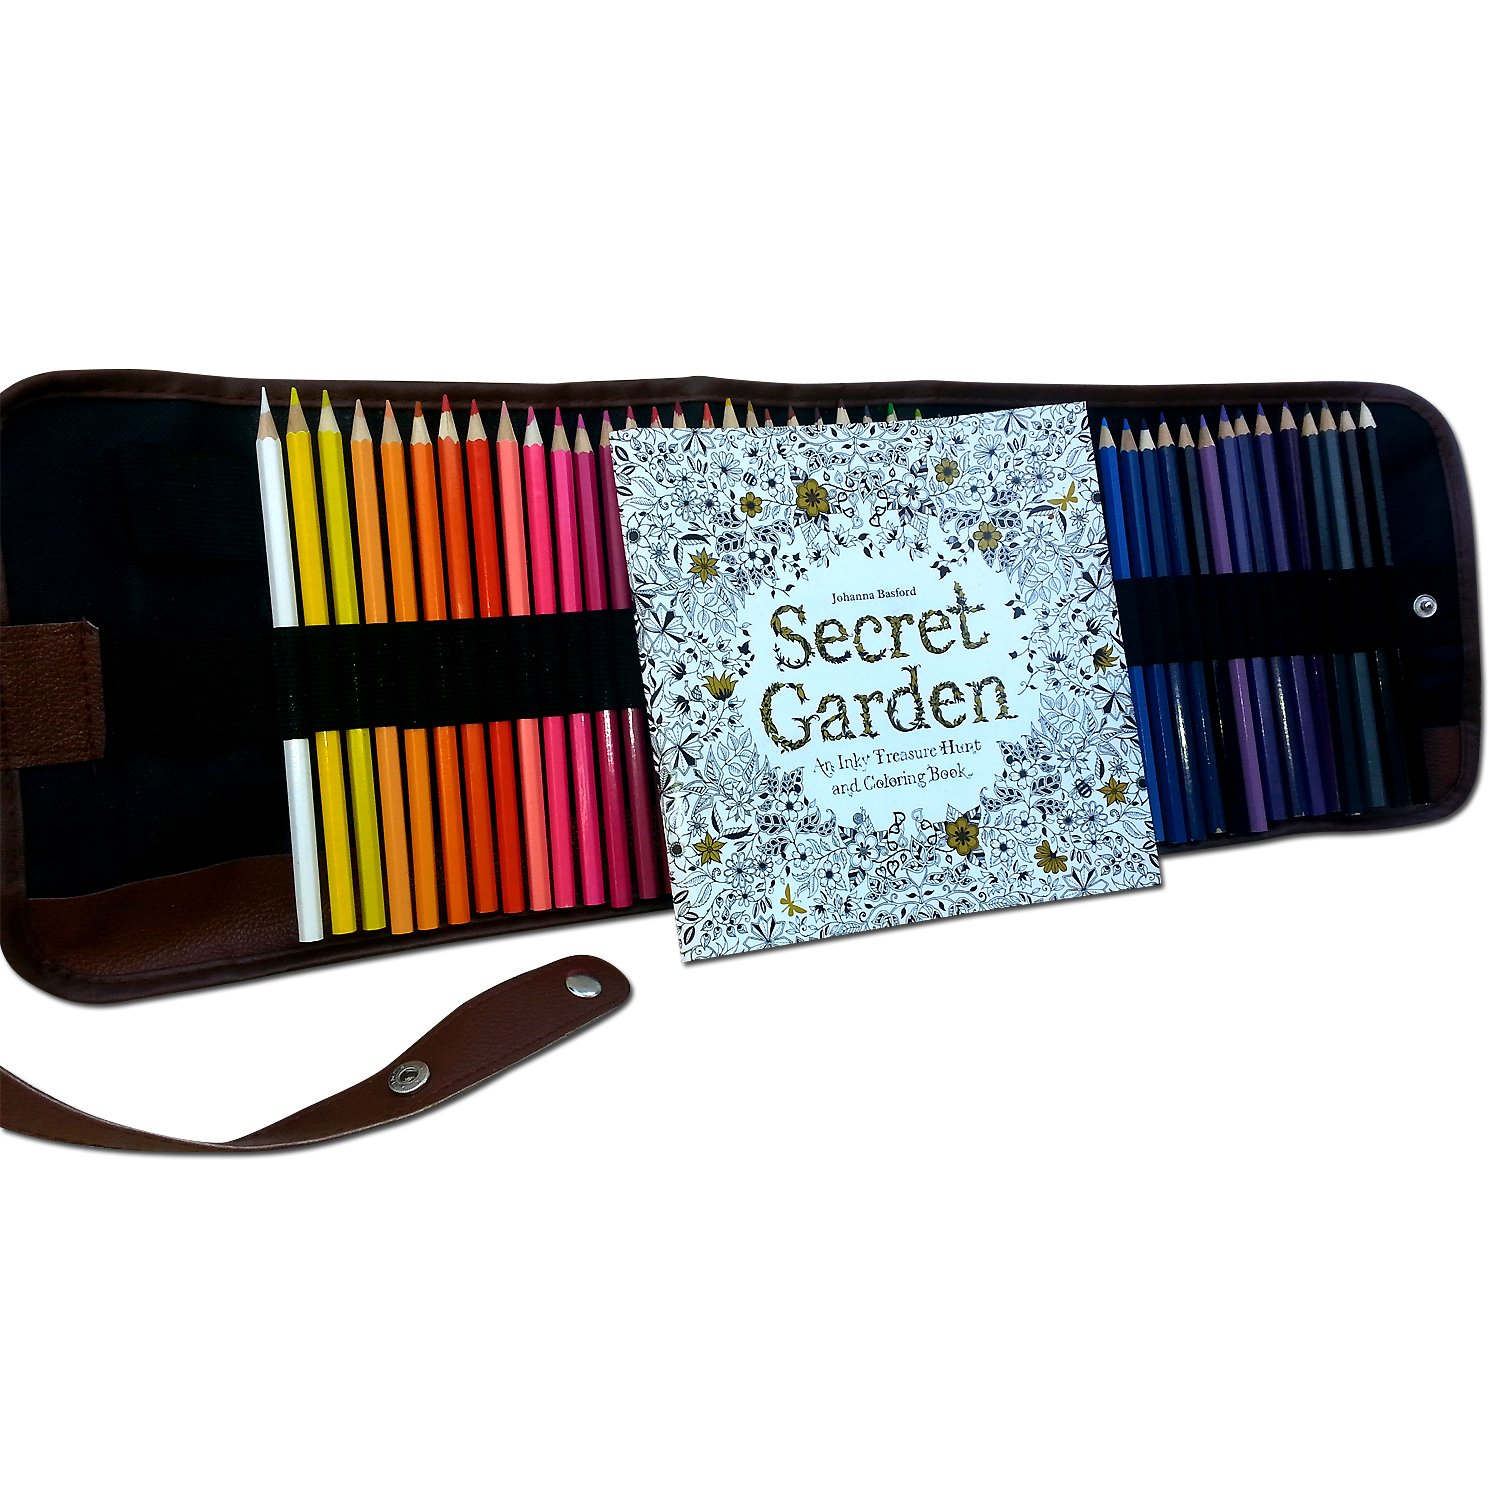 "48 Premium Art Colored Pencils Supplies with Roll UP Washable Canvas Pencil Bag: Enhance your creativity with this adult coloring book ""secret garden"" free gift"